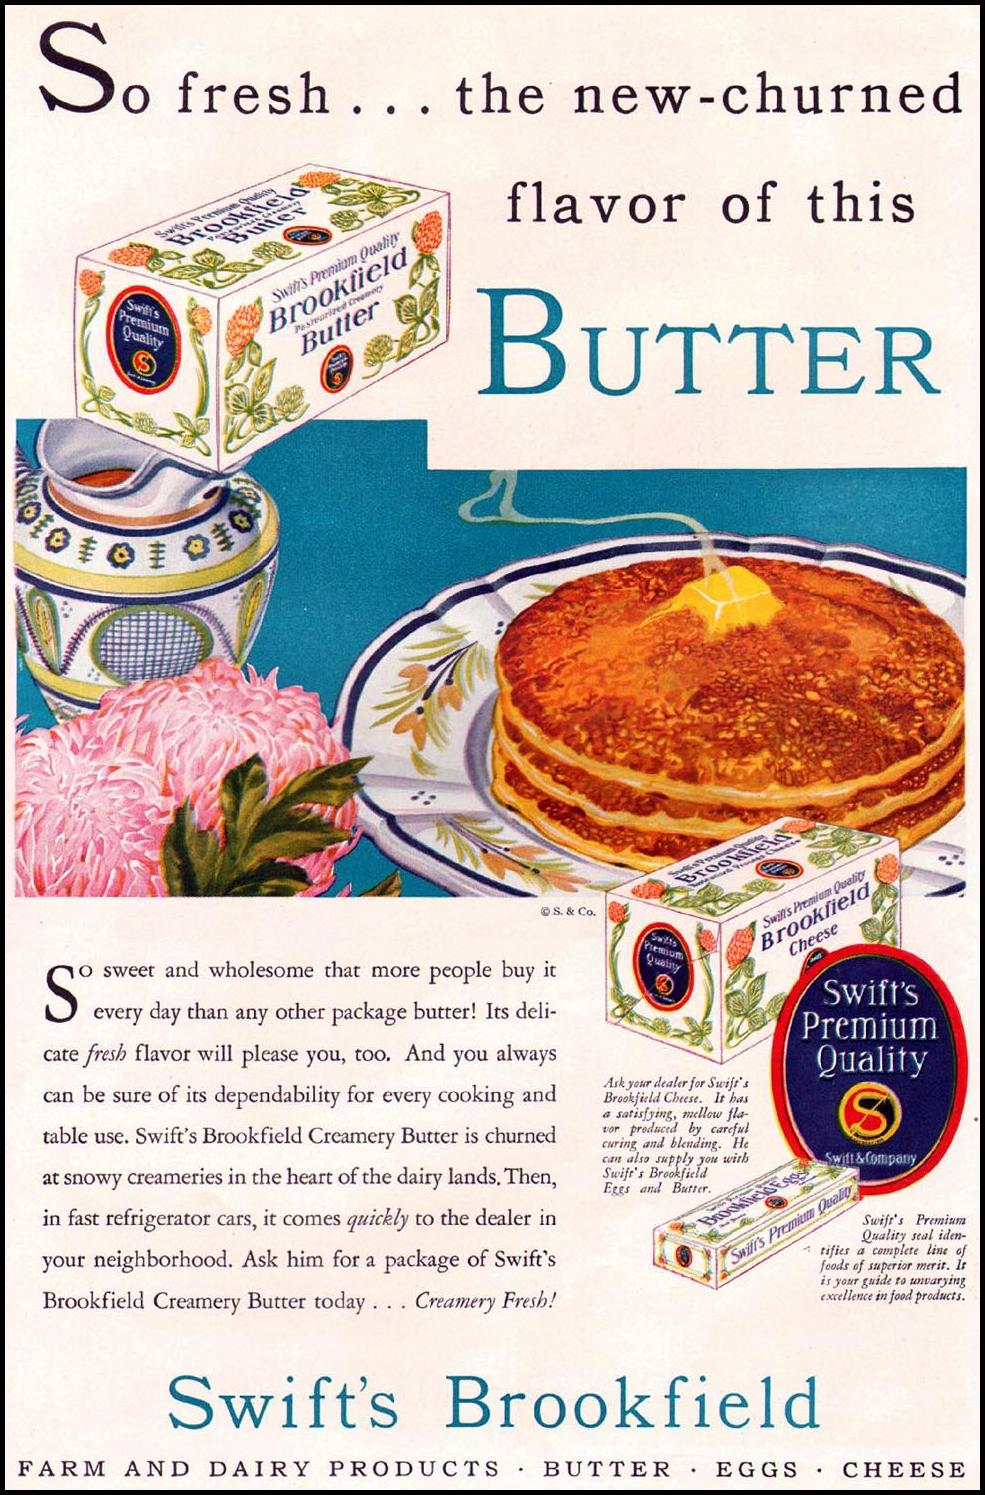 SWIFT'S BROOKFIELD BUTTER BETTER HOMES AND GARDENS 10/01/1930 p. 37